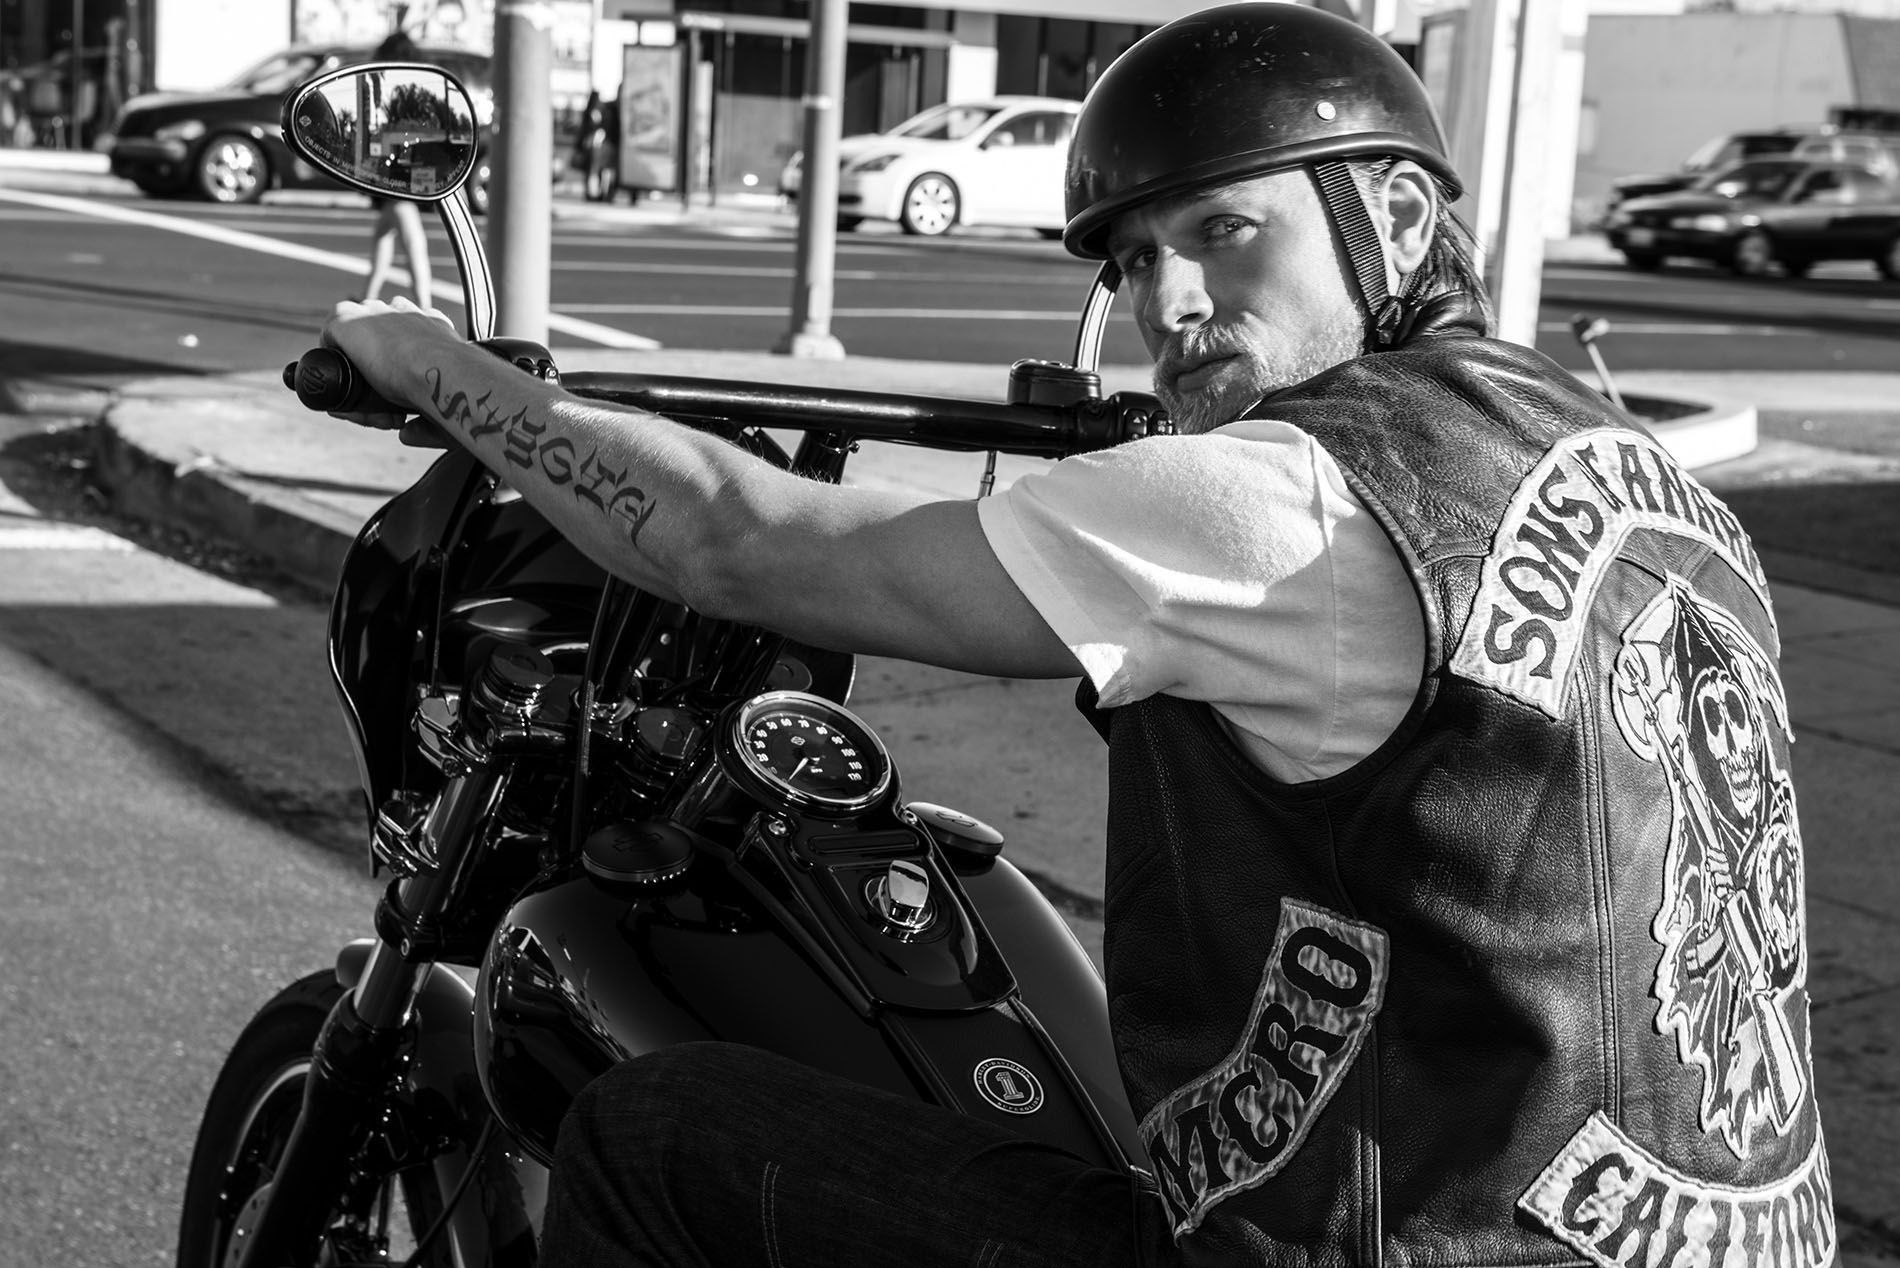 Charlie Hunnam - Sons of Anarchy Photoshoot | Riding ...